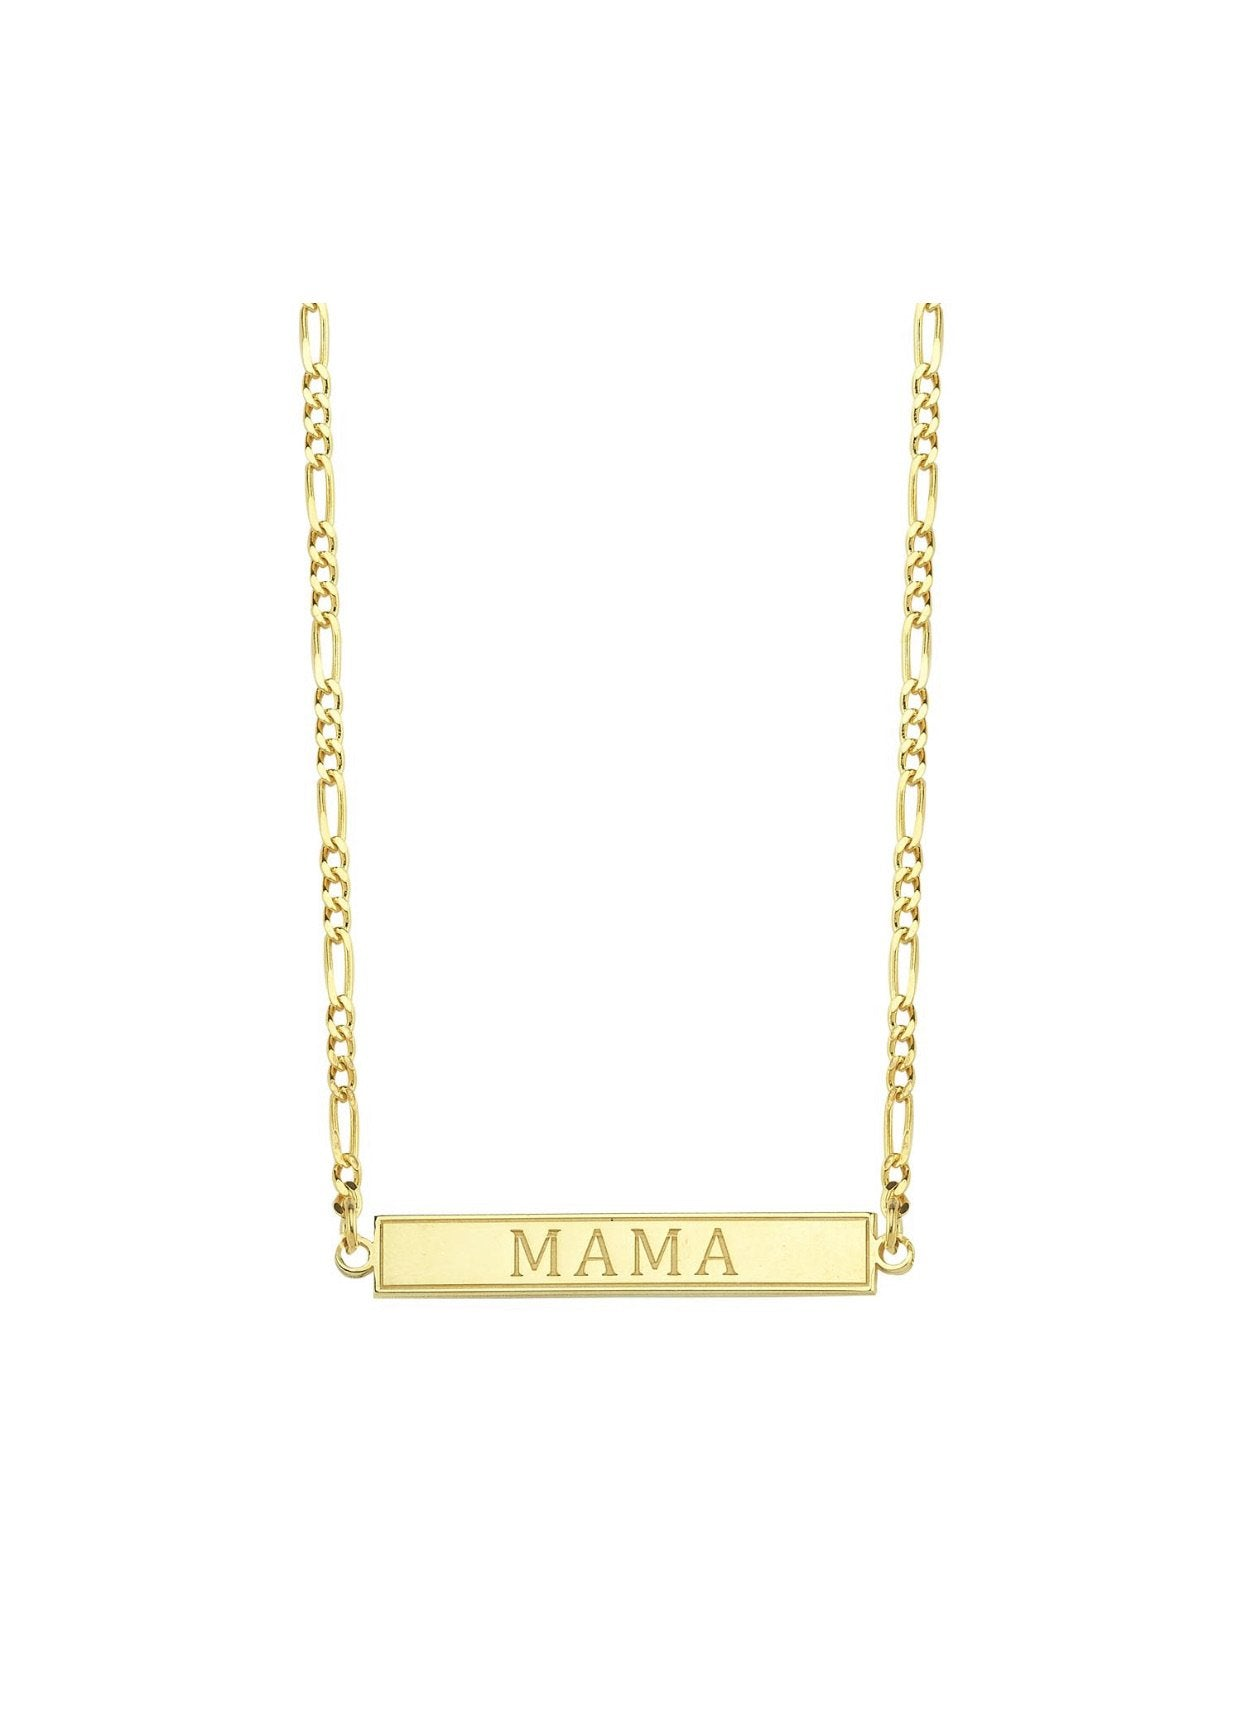 Mama Bar Chain Link Necklace